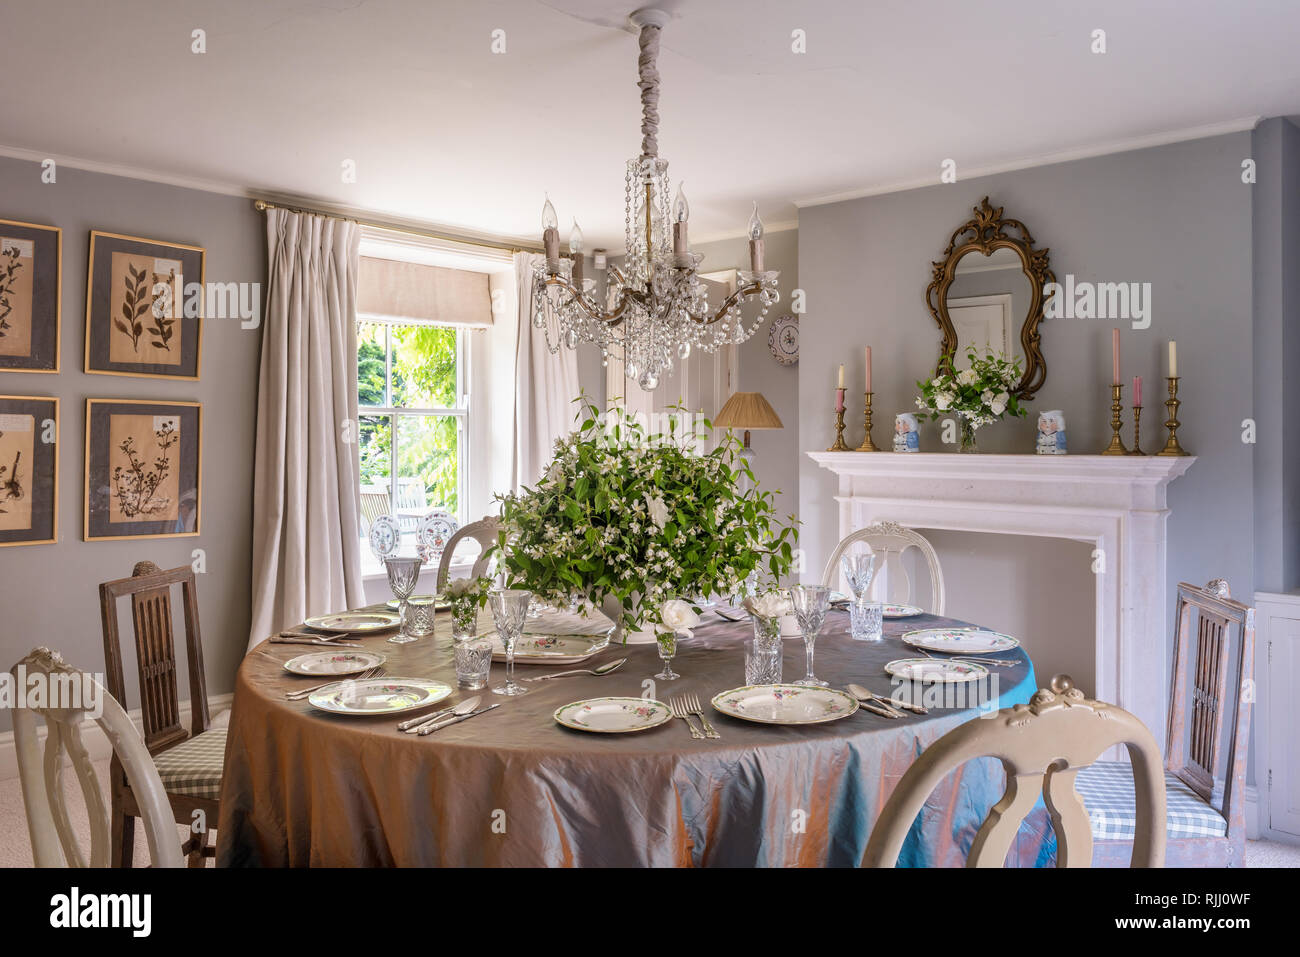 Burlington fireplace and restored French chandelier from Hattie Hatfield Decorative Antiques & Interiors. - Stock Image